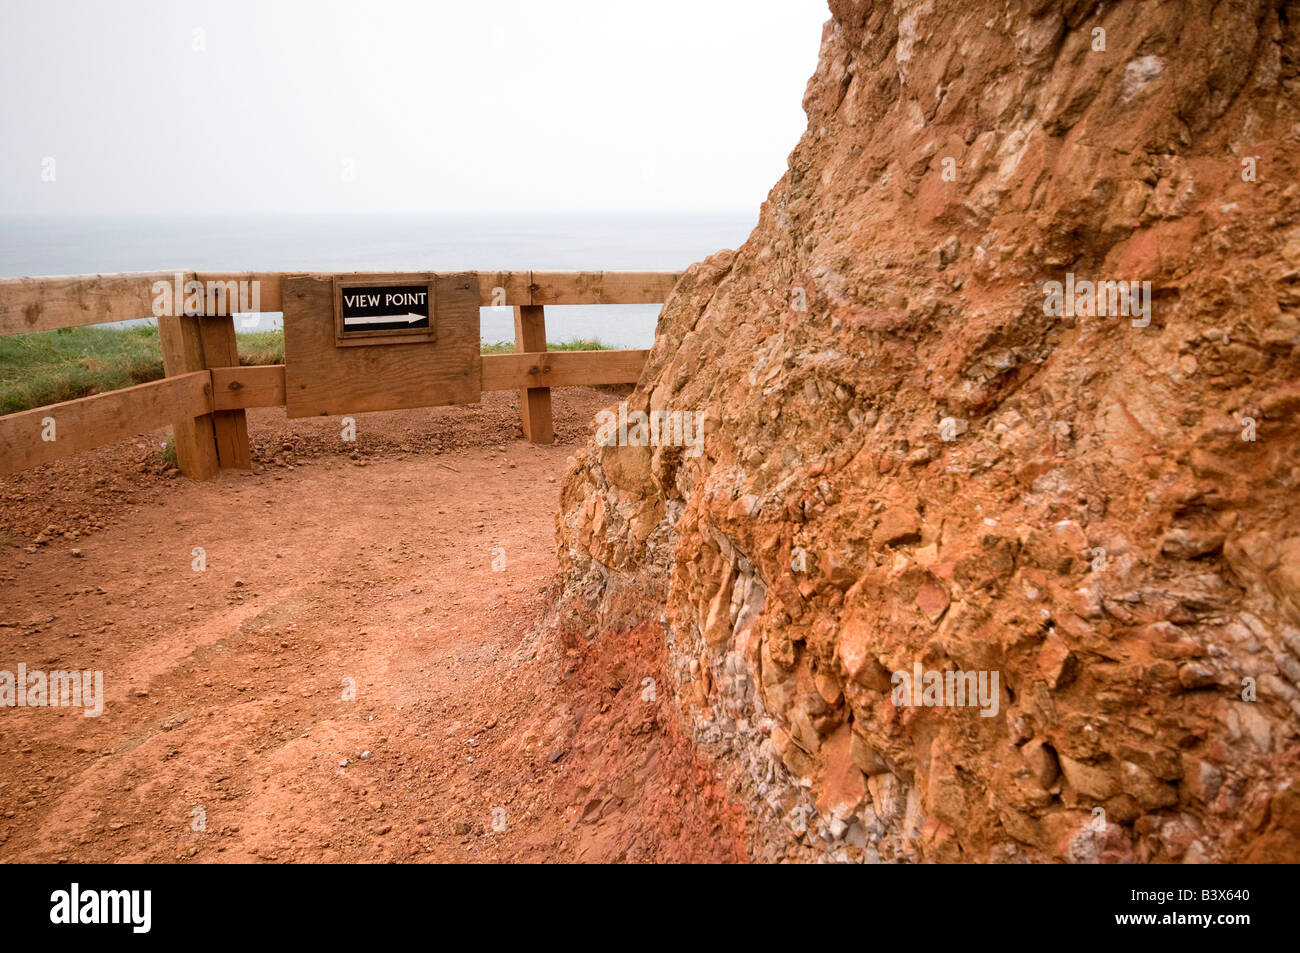 Comical Sign Reads 'View Point' Along Clifftop Walk. Giants Causeway, Northern Ireland Stock Photo